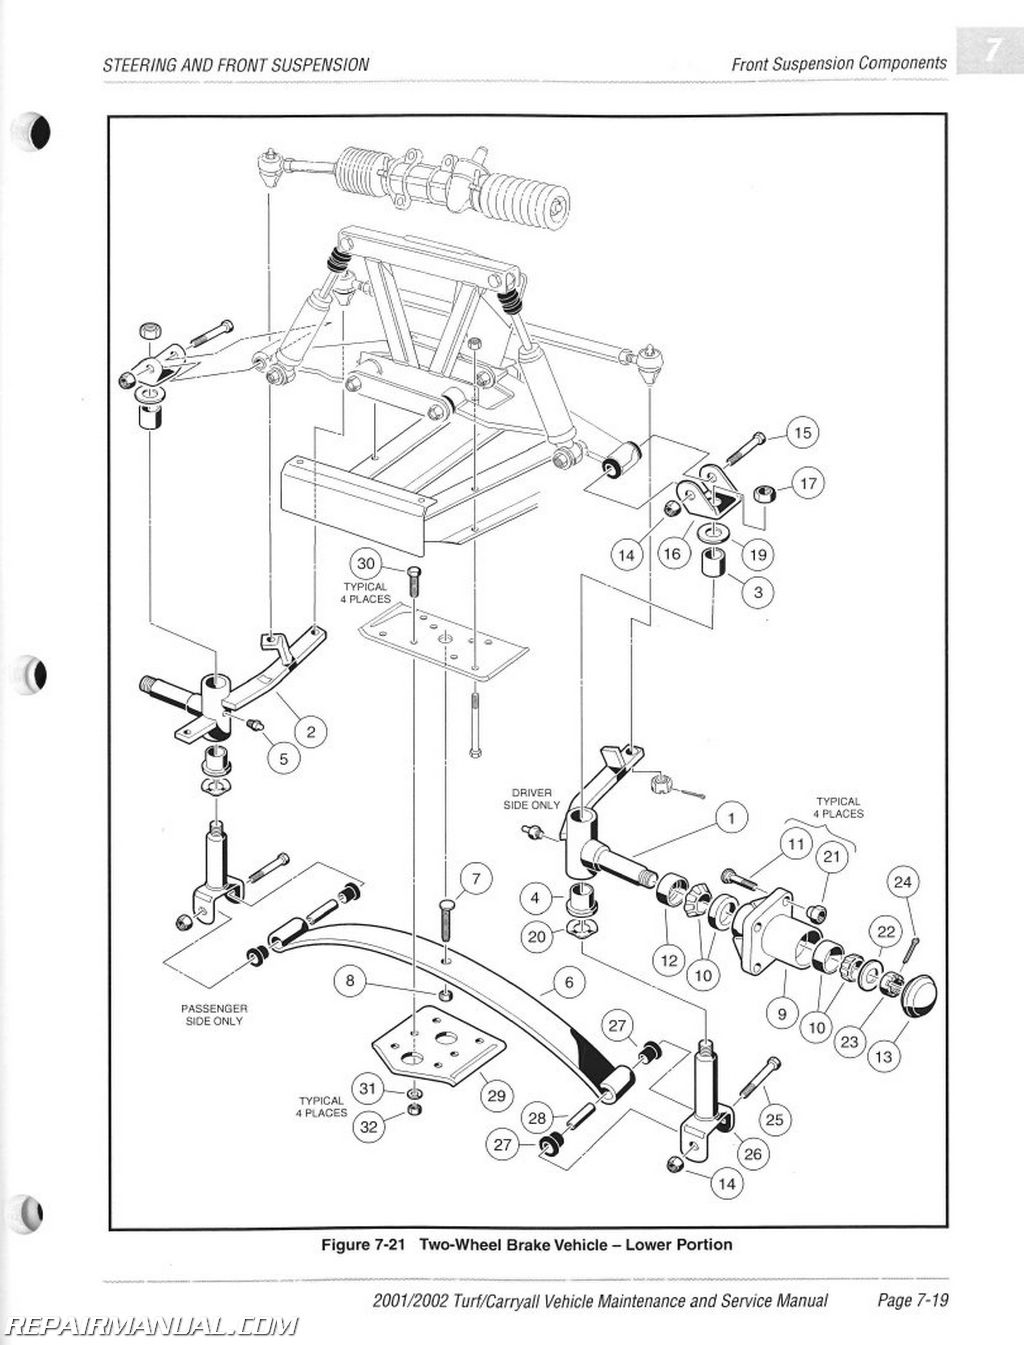 2001 Club Car Ds Wiring Diagram. Club Car Ds Parts, Club Car Ds Horn ...